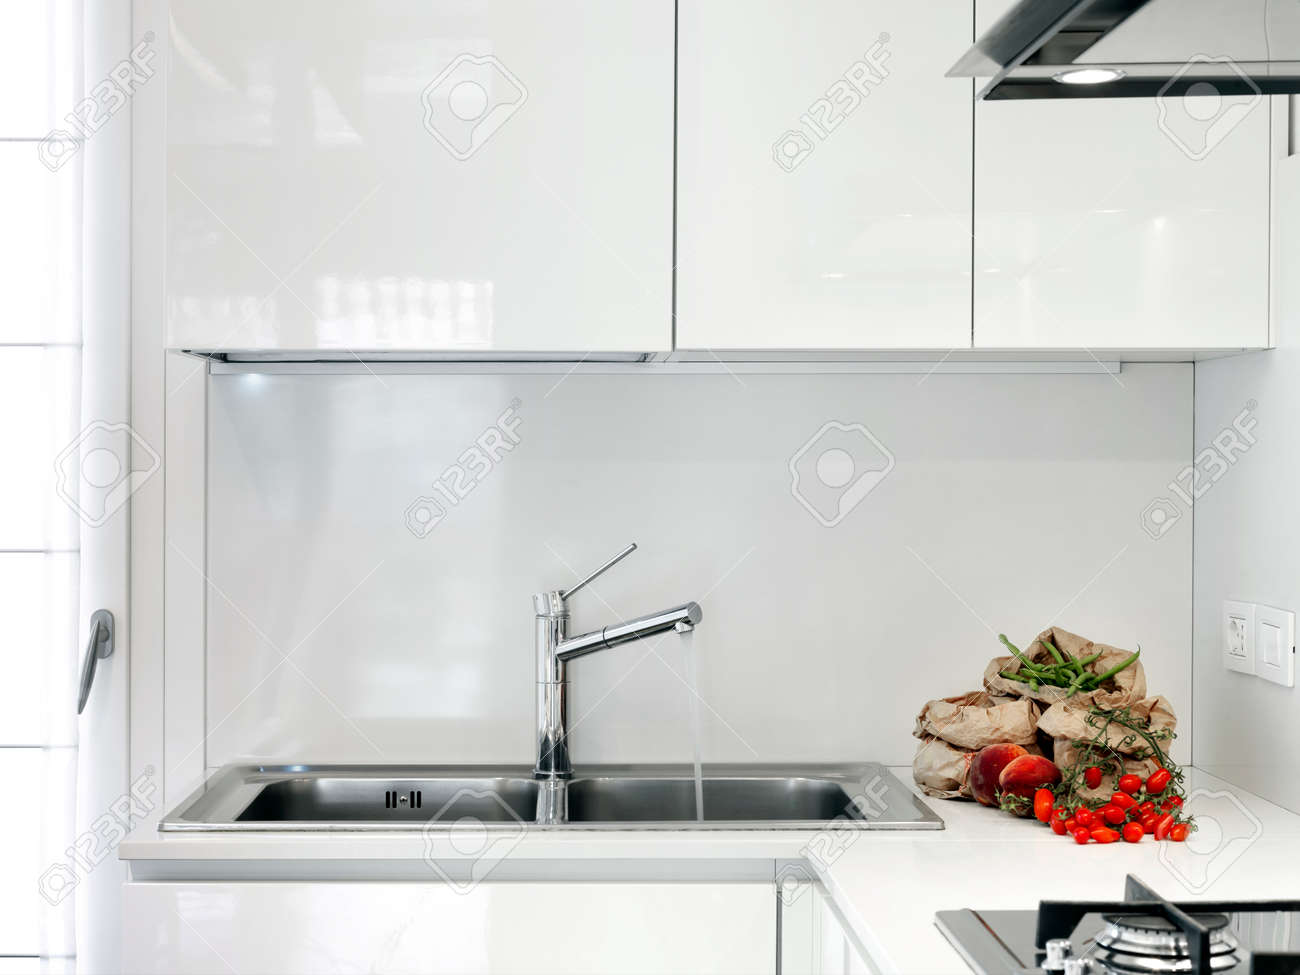 Fresh Fruit On The Countertop In A Modern White Kitchen Stock Photo ...